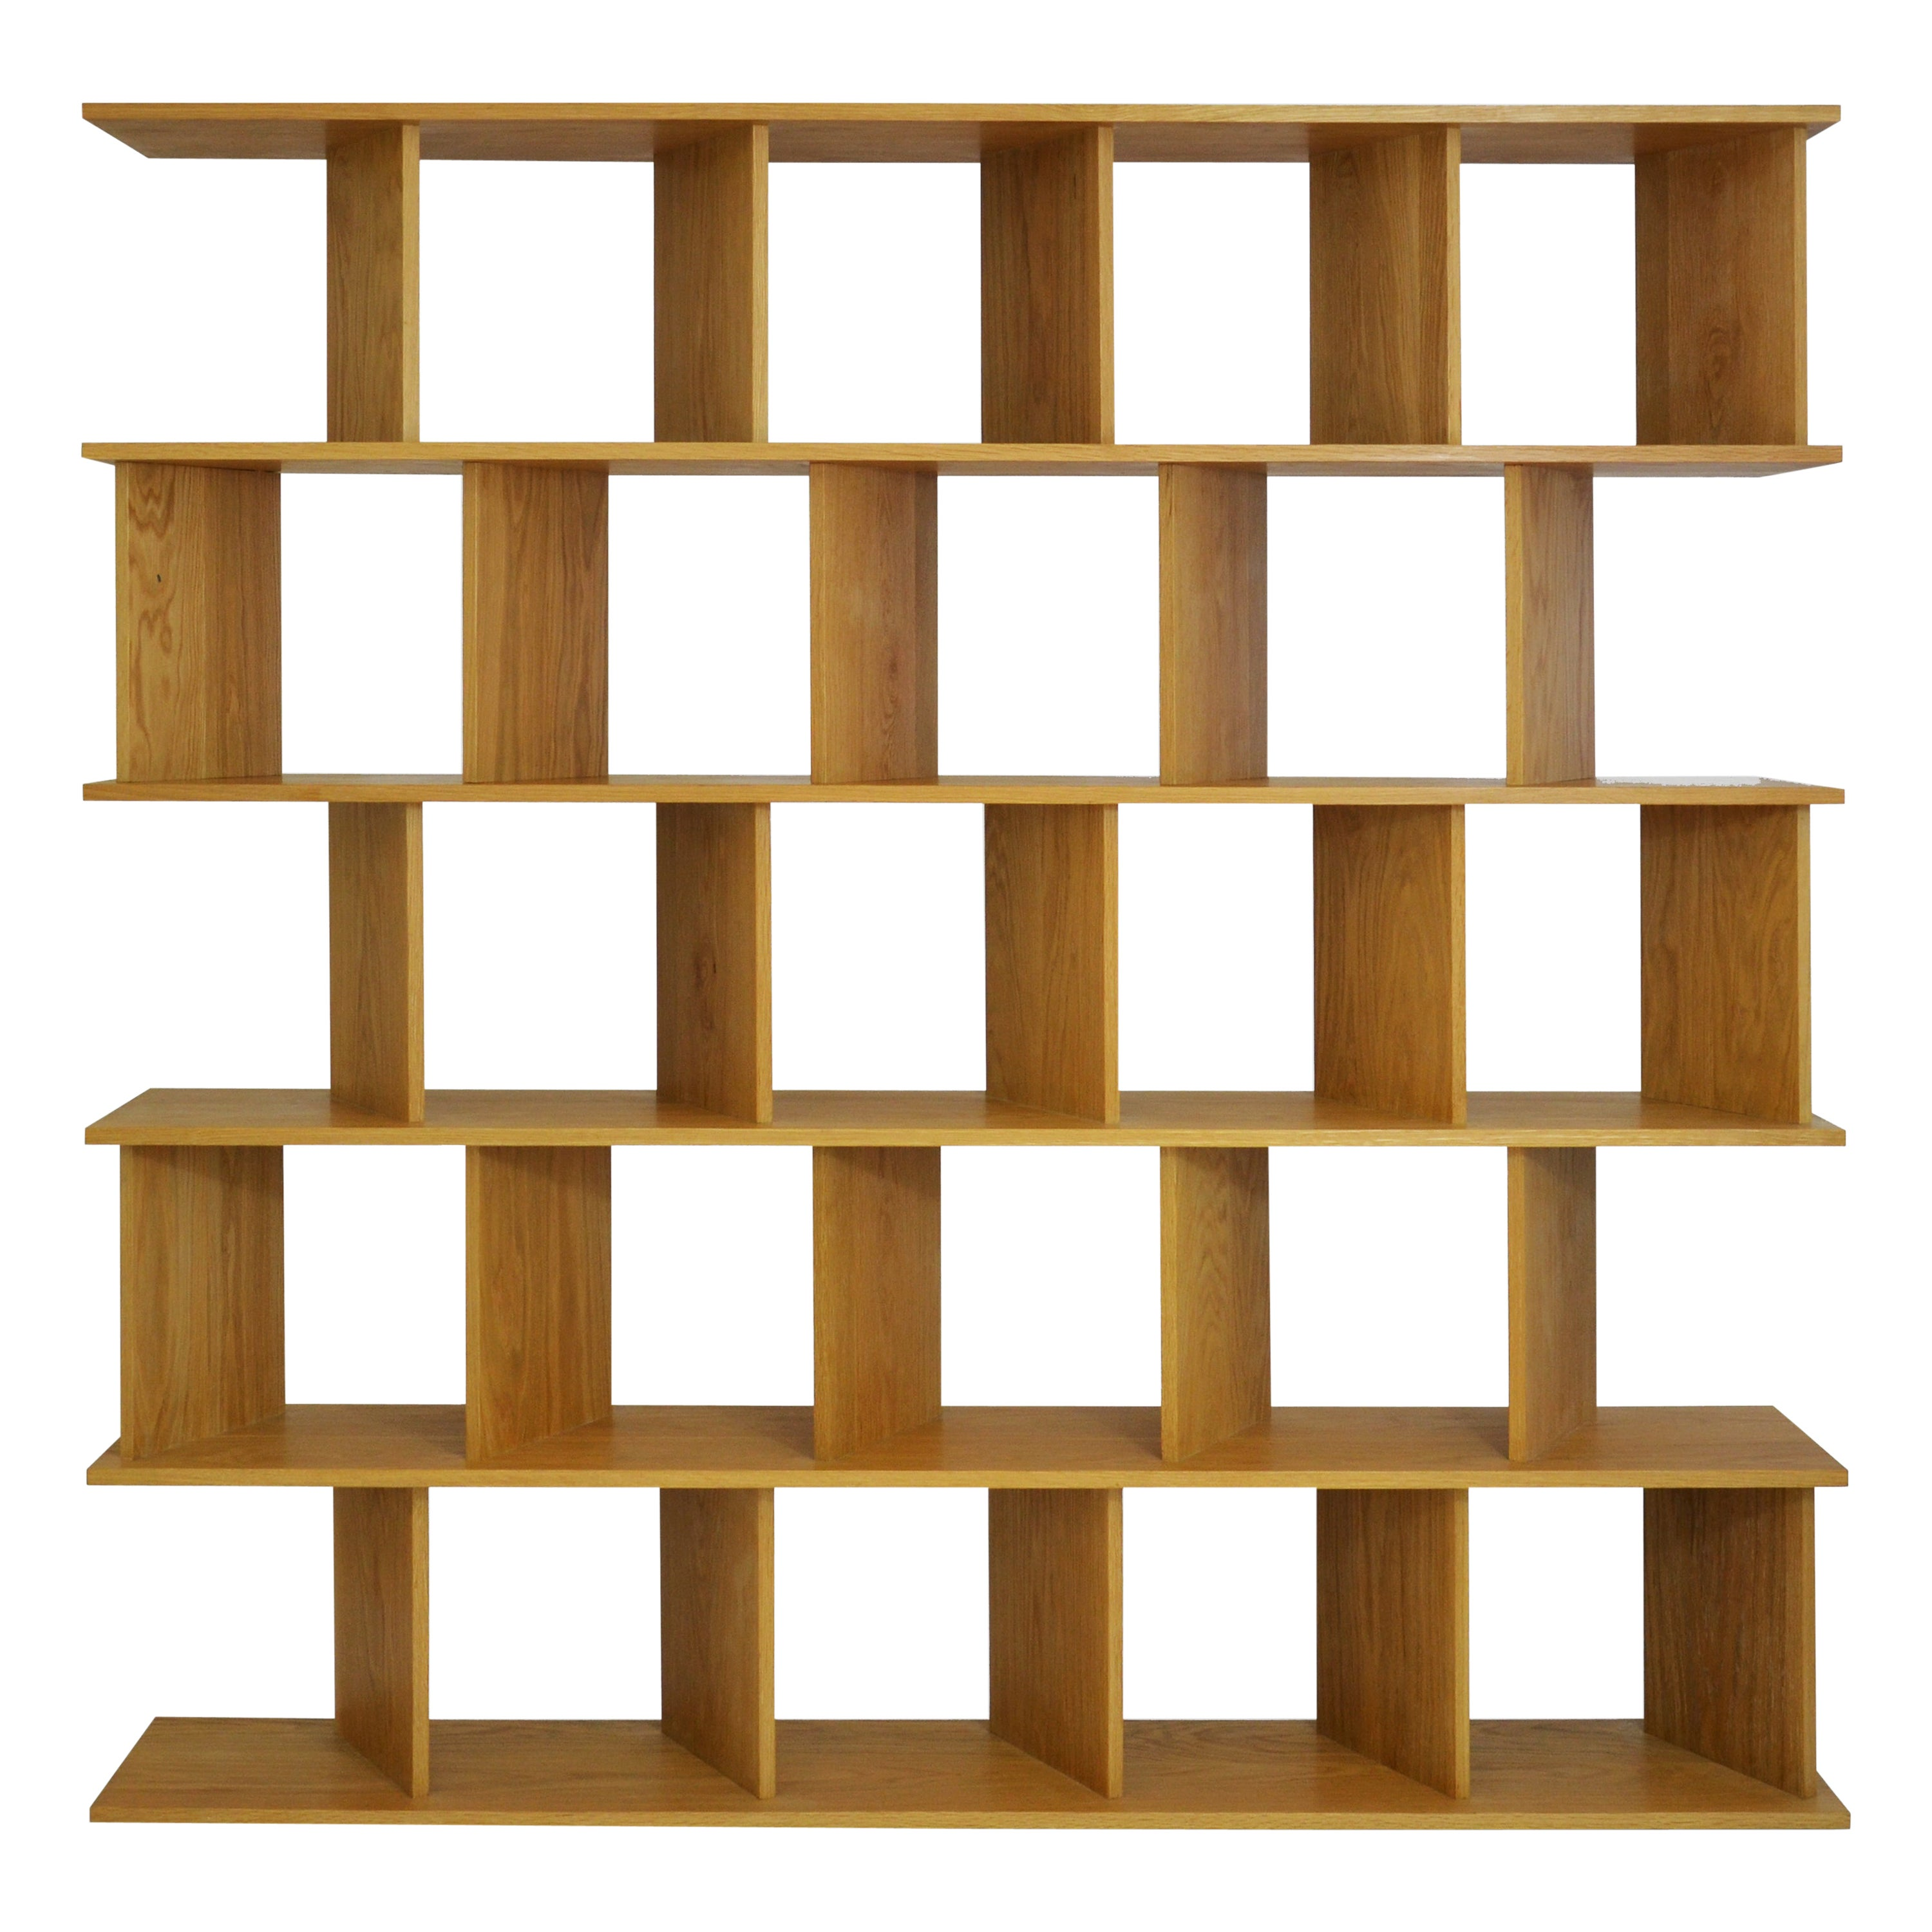 "Contemporary Room Divider Shelving ""30/30 L"" in Oak by Casey Lurie Studio"